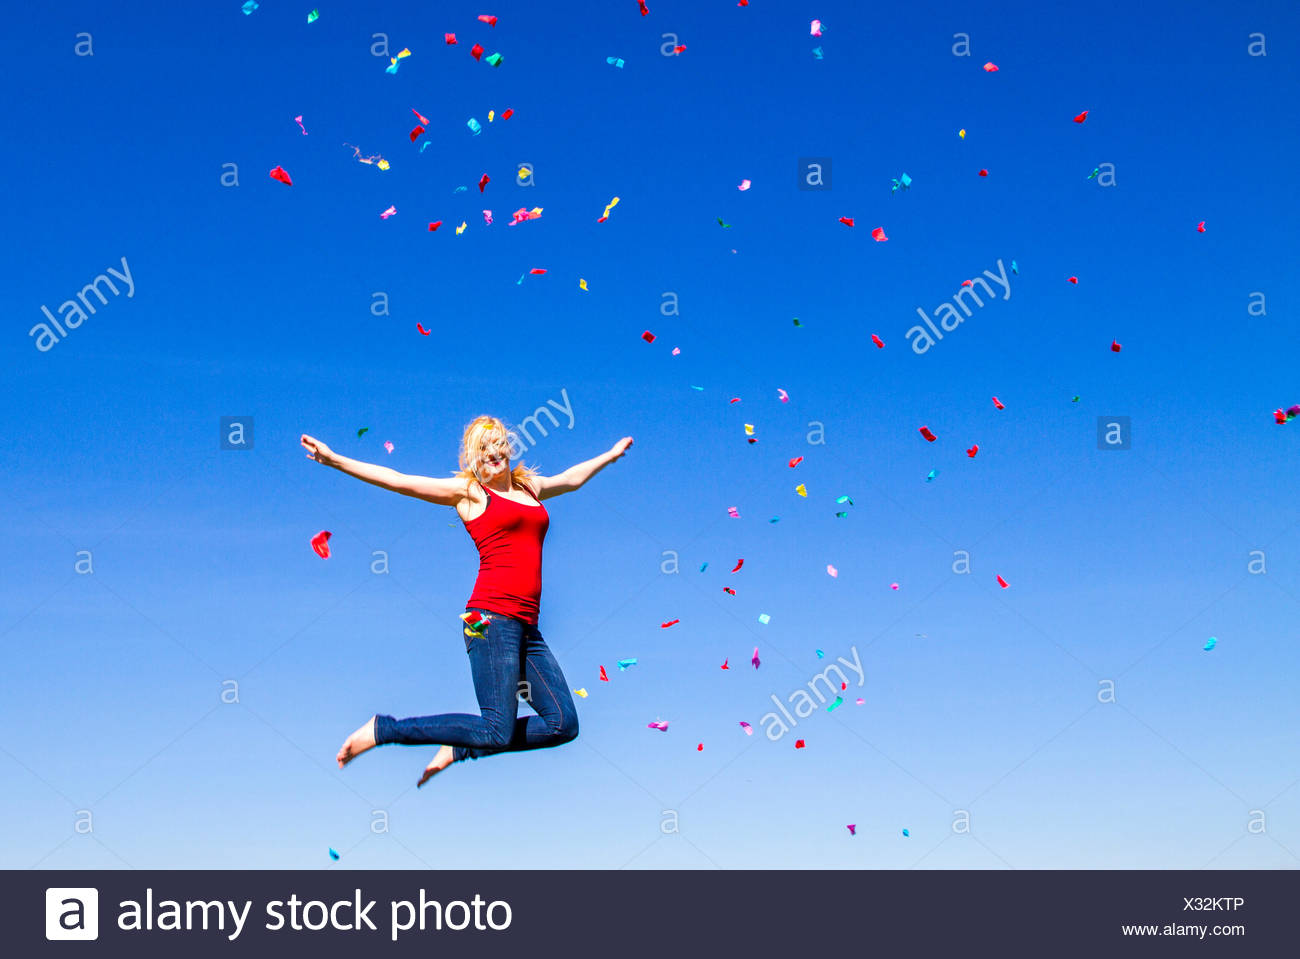 Portrait of blond woman jumping with confetti against blue sky - Stock Image